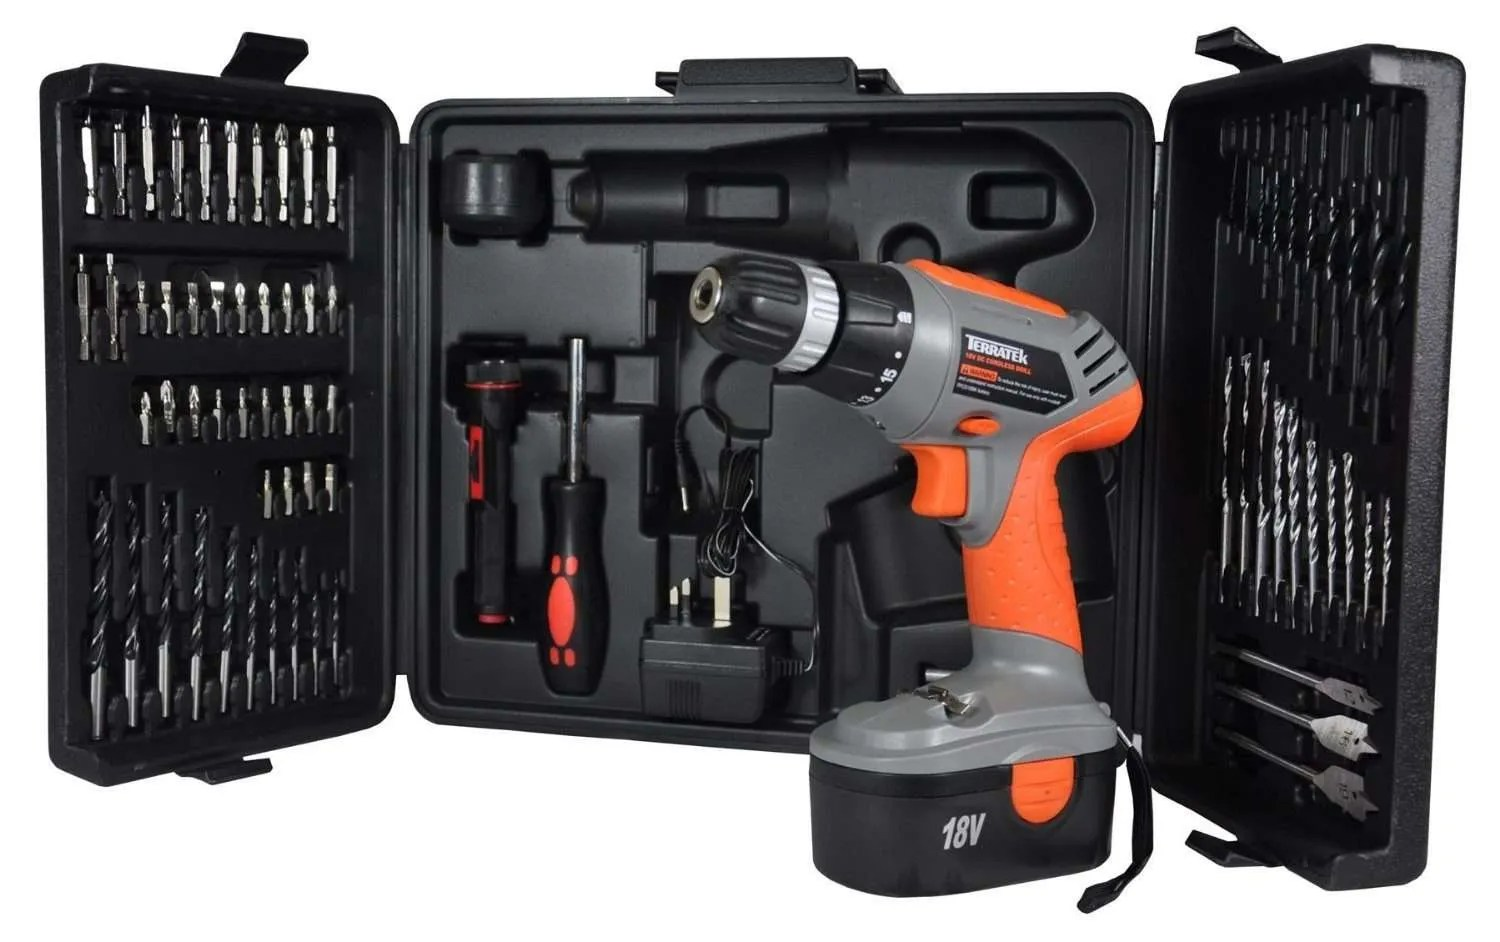 Terratek TT18VKIT 18V Cordless Drill, Electric Screwdriver, Combi Drill Driver, 68pc Rechargeable Drill Set